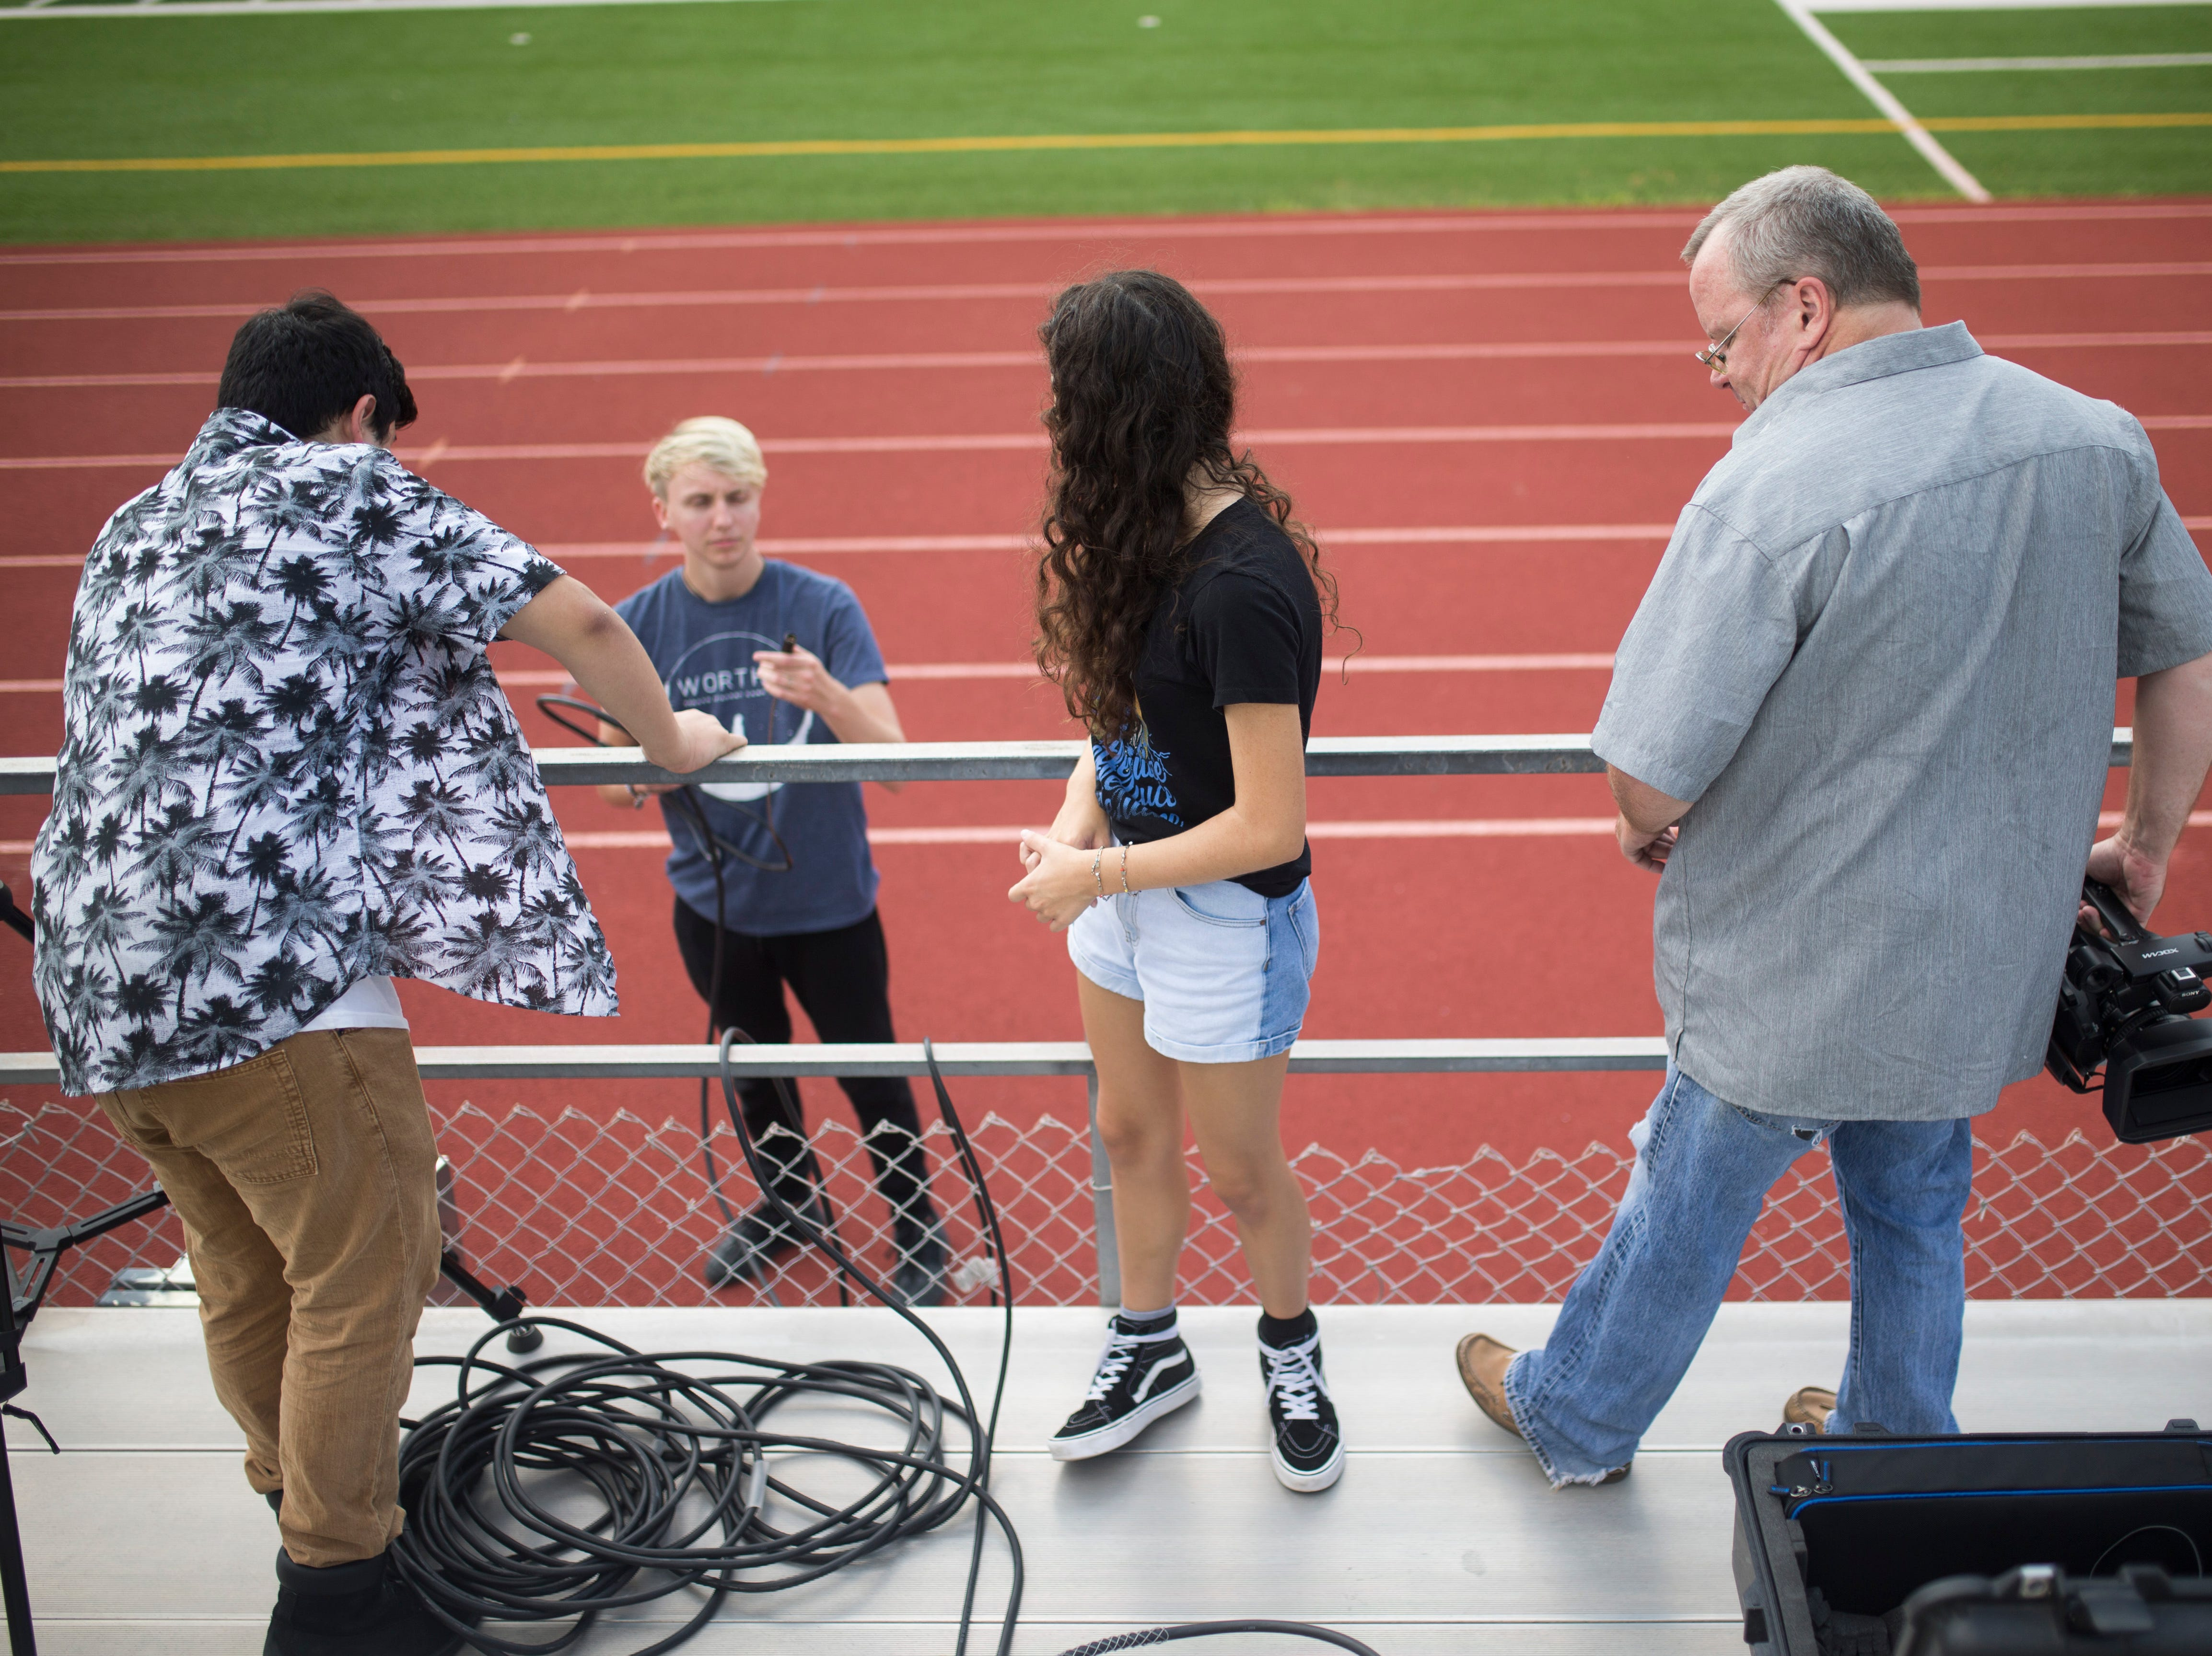 Gregory Portland students practice working with video gear for the upcoming football season, Friday August 3, 2018, at Ray Akins Wildcat Stadium.